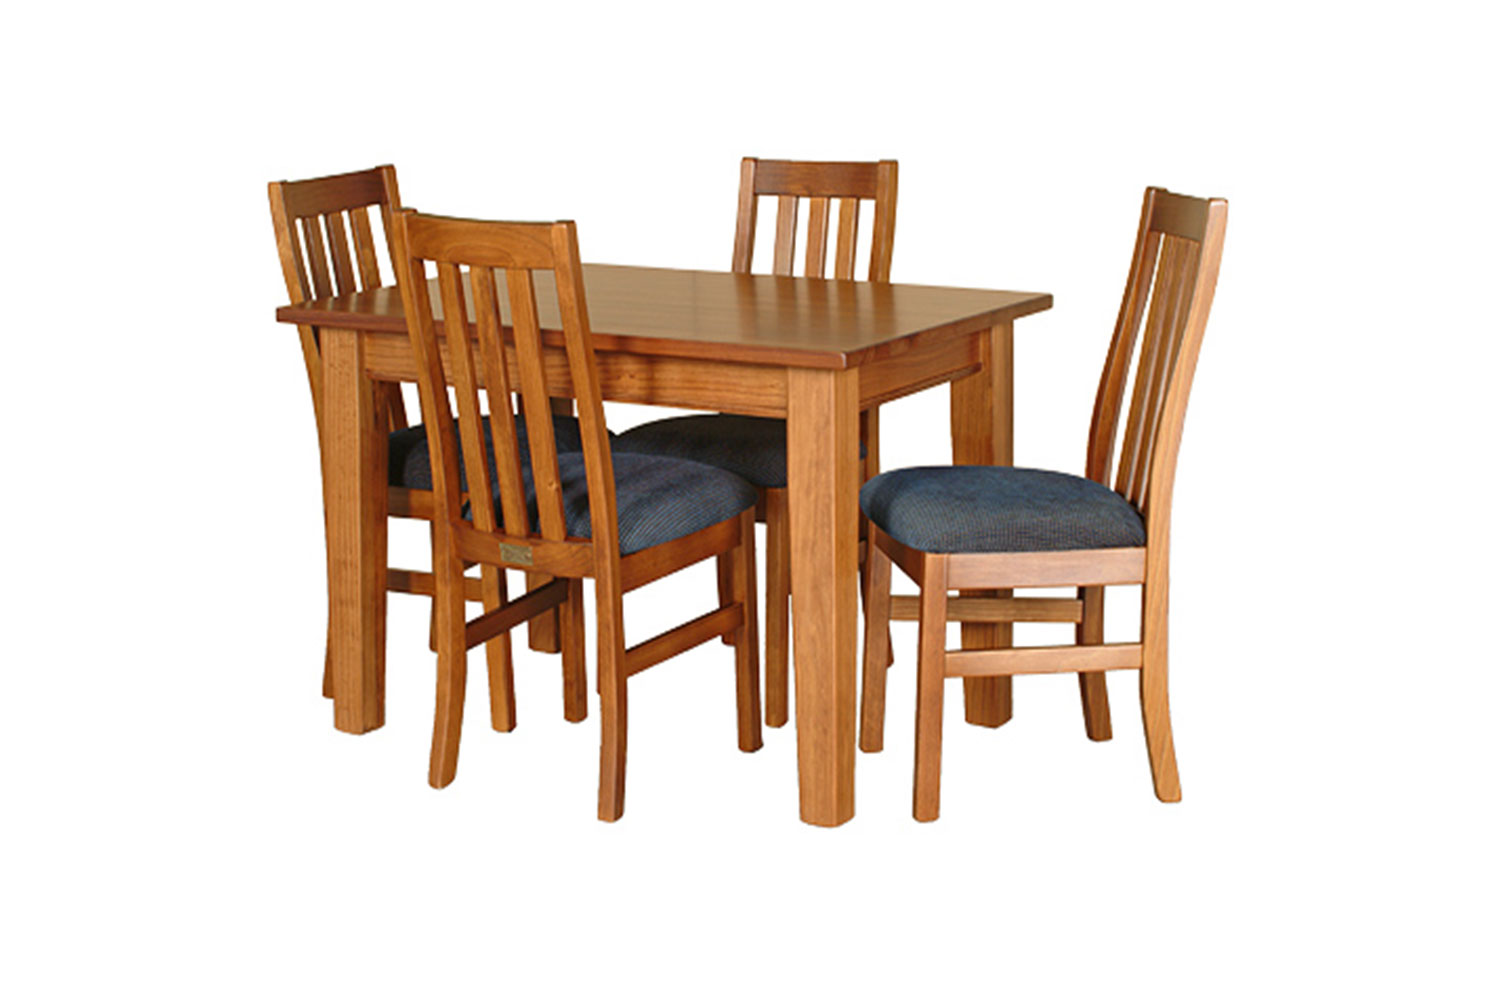 Ferngrove 5 piece rectangular dining suite by coastwood for Furniture 3 piece suites